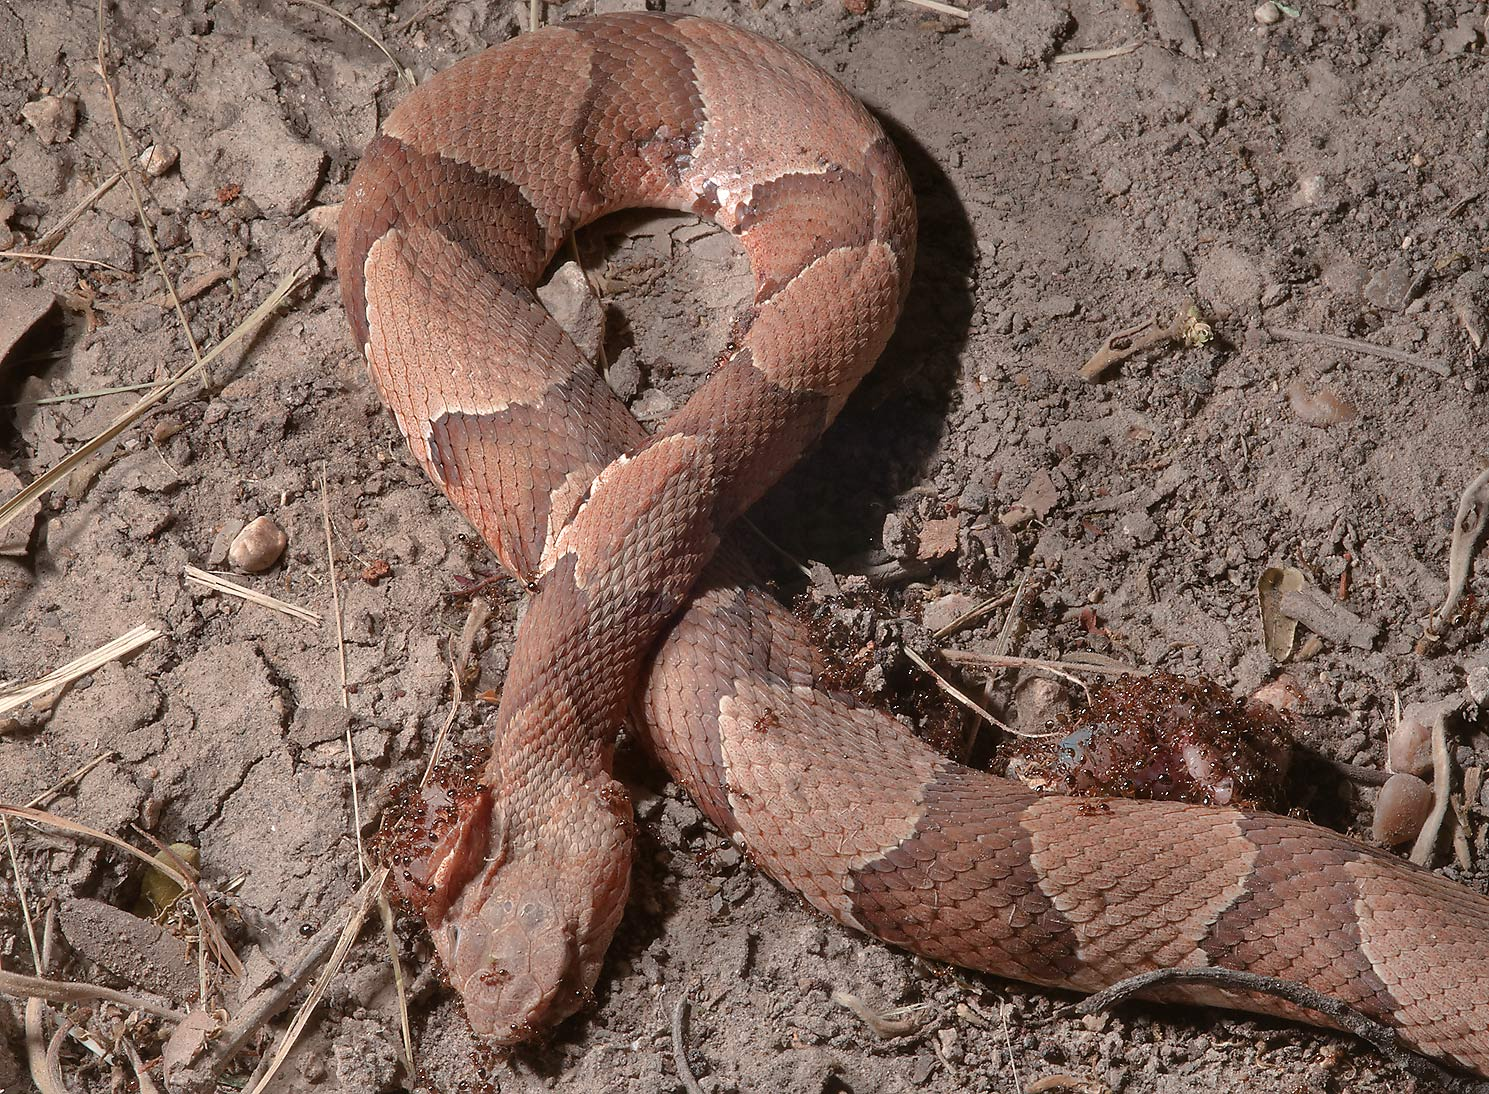 Ants eating a dead copperhead snake in Birch Creek Unit of Lake Somerville State Park